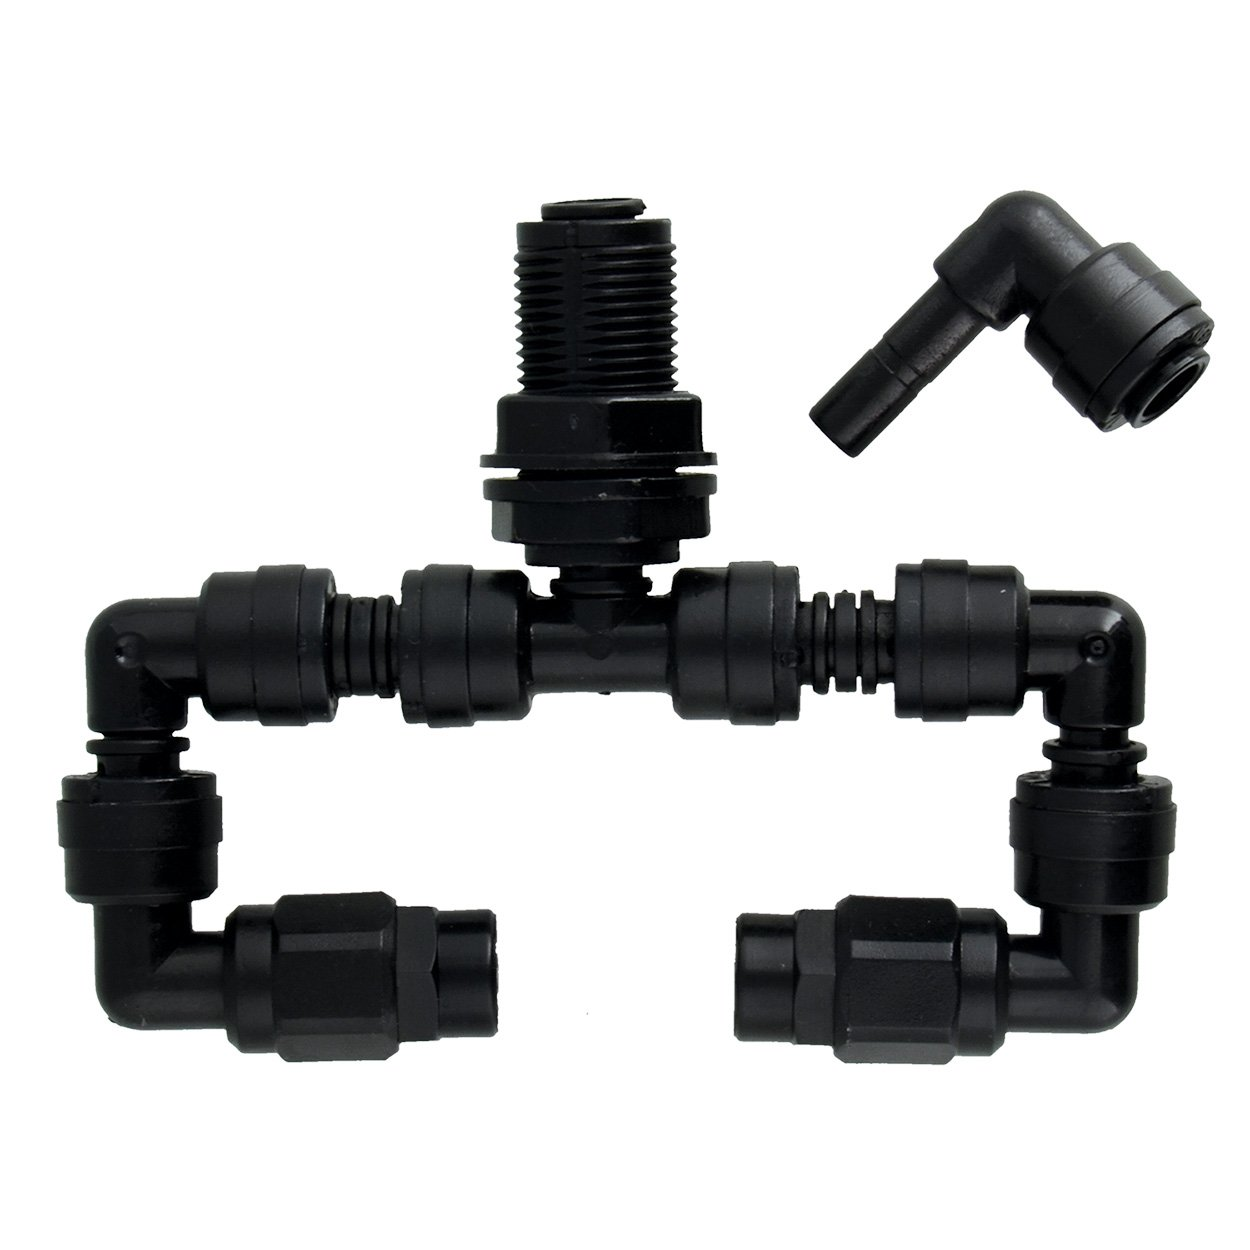 MistKing 22256 Double Misting Assembly Value L-Fitting+A1585 by MistKing